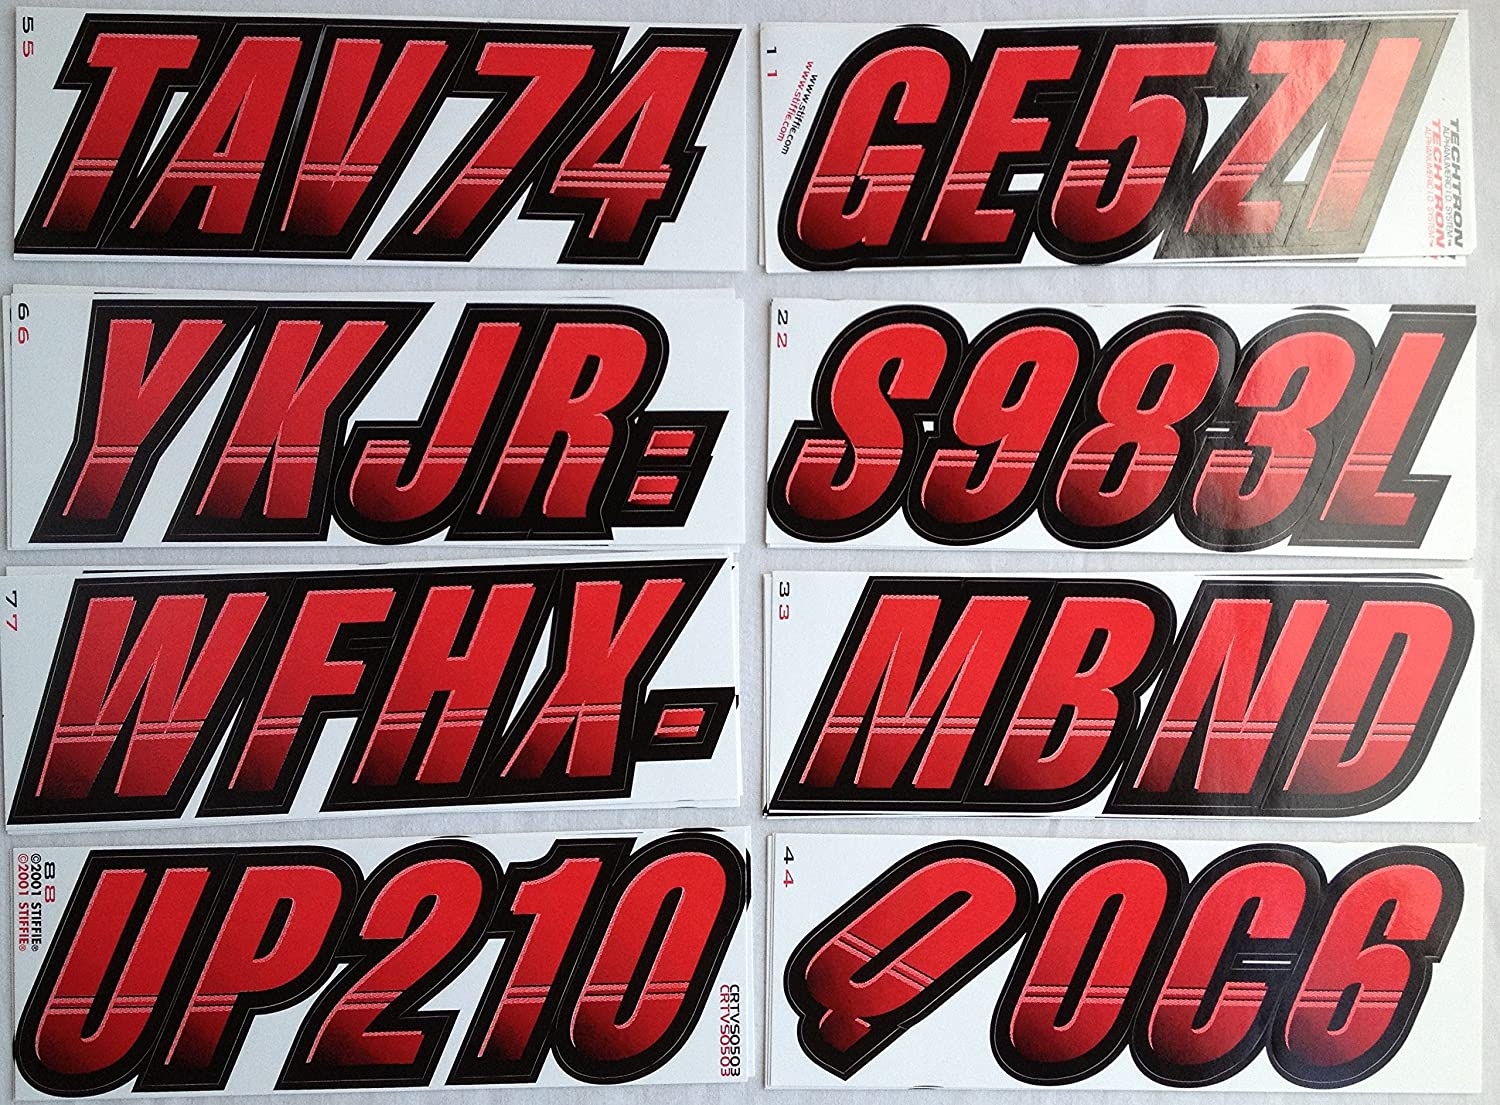 STIFFIE Techtron Red//Black 3 Alpha-Numeric Registration Identification Numbers Stickers Decals for Boats /& Personal Watercraft